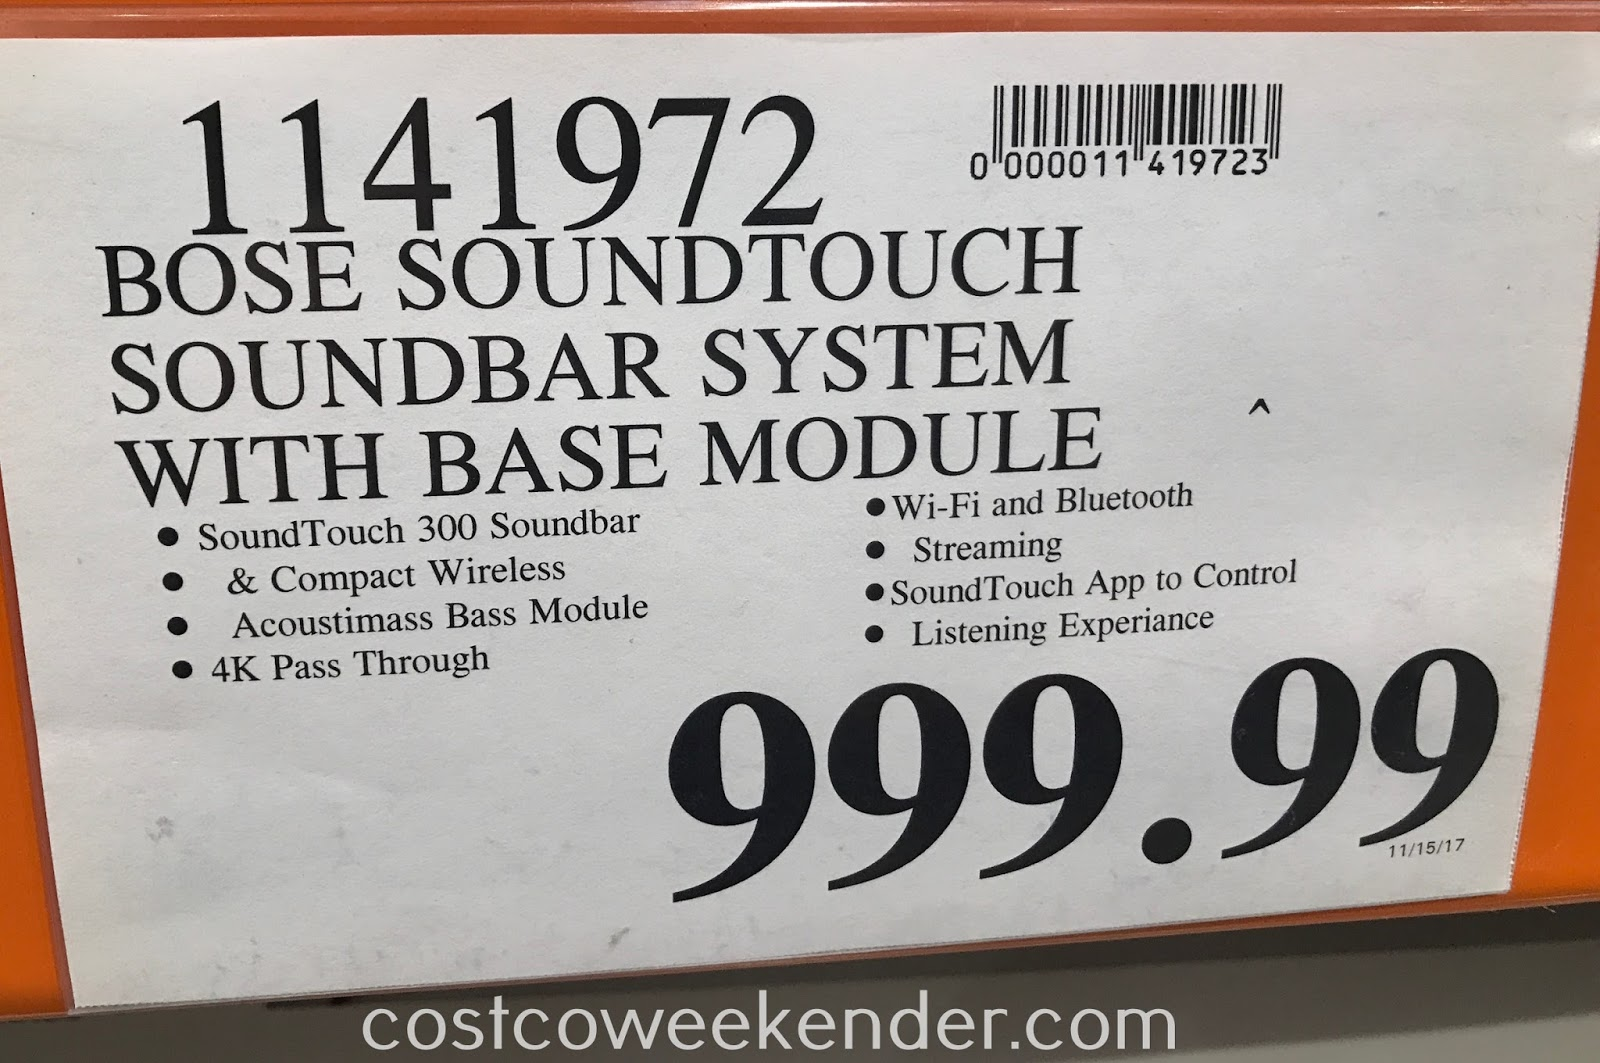 Deal for the Bose SoundTouch 300 Soundbar at Costco